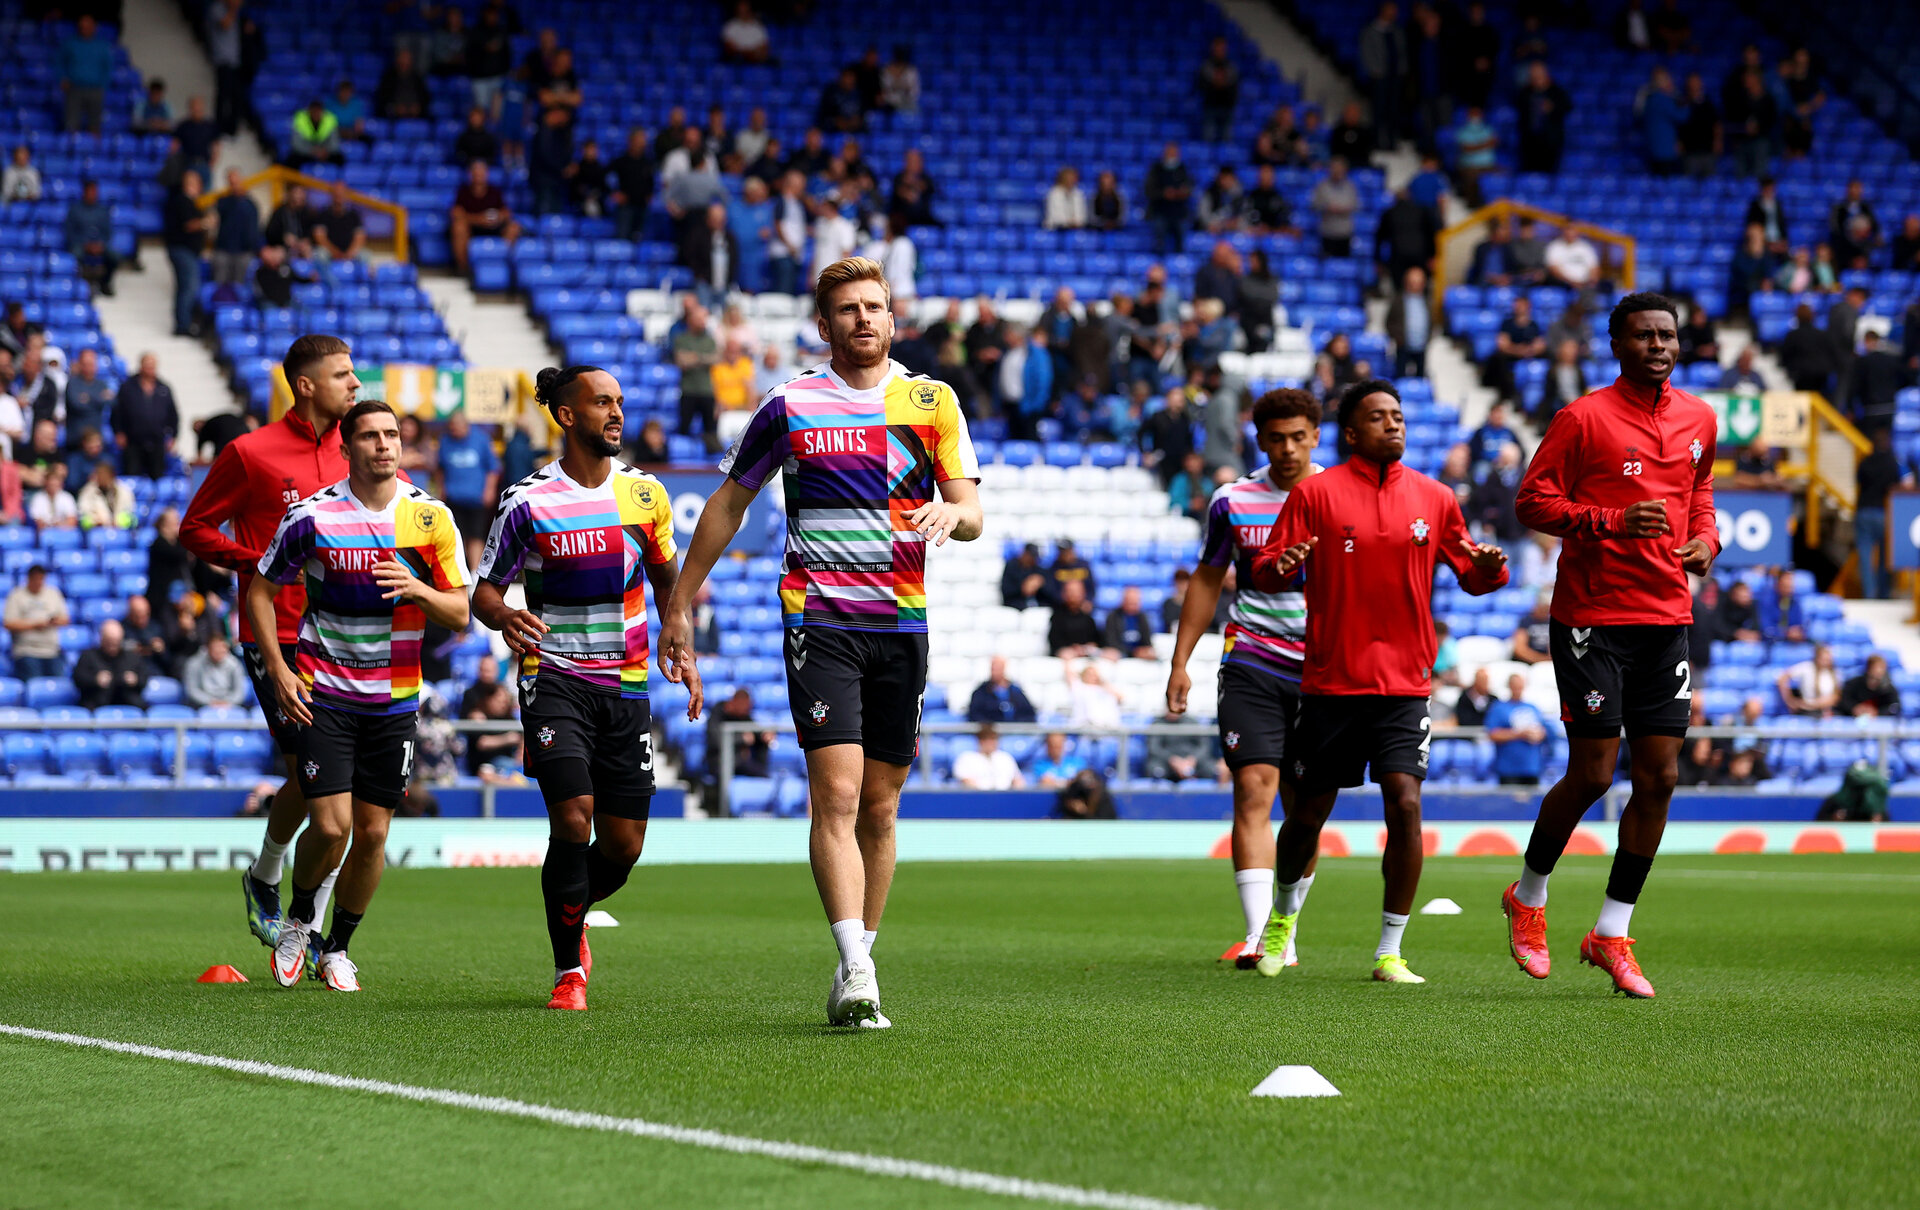 LIVERPOOL, ENGLAND - AUGUST 14: Southampton players warm up during the Premier League match between Everton  and  Southampton at Goodison Park on August 14, 2021 in Liverpool, England. (Photo by Matt Watson/Southampton FC via Getty Images)